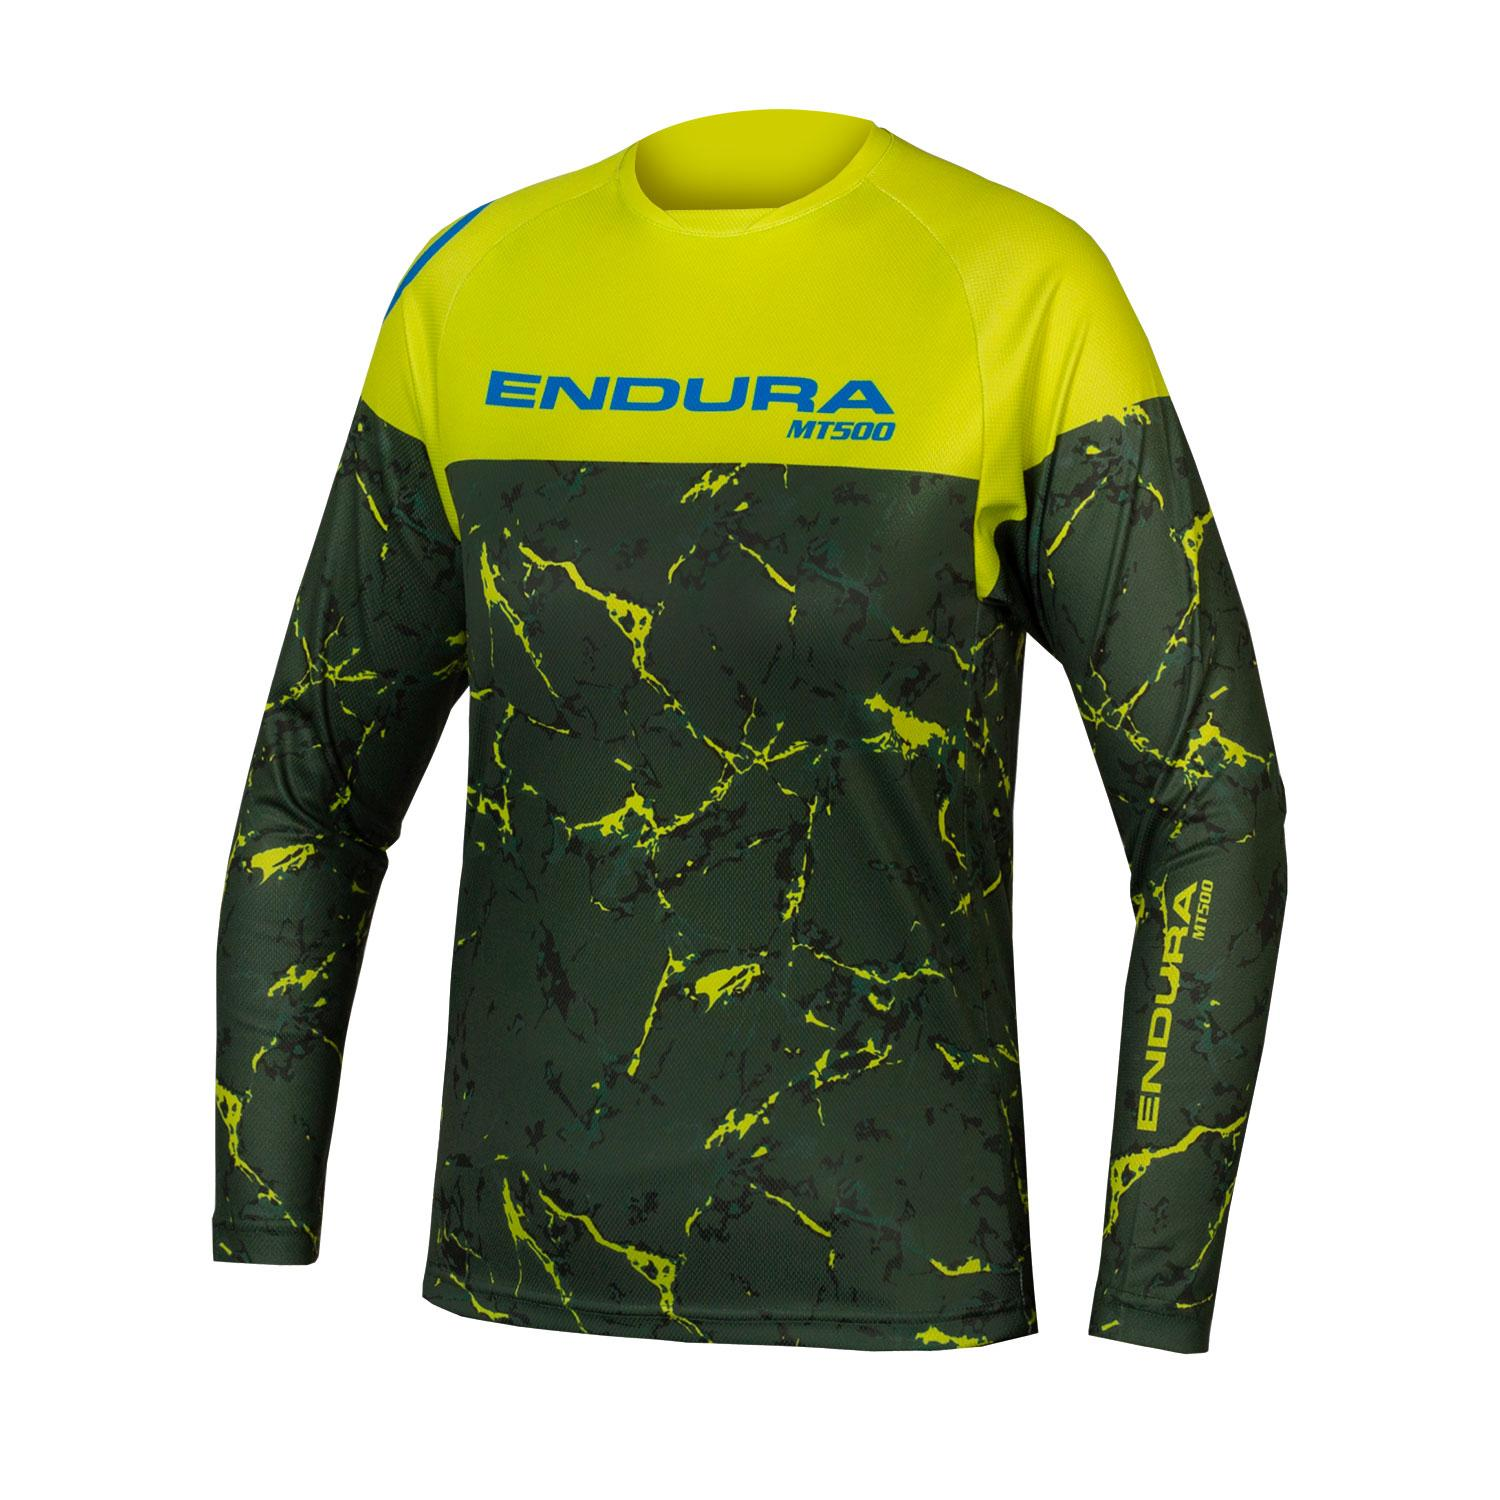 Endura Fietsshirt MTB Kids Groen - Kids MT500JR L/S T LTD Lime Groen